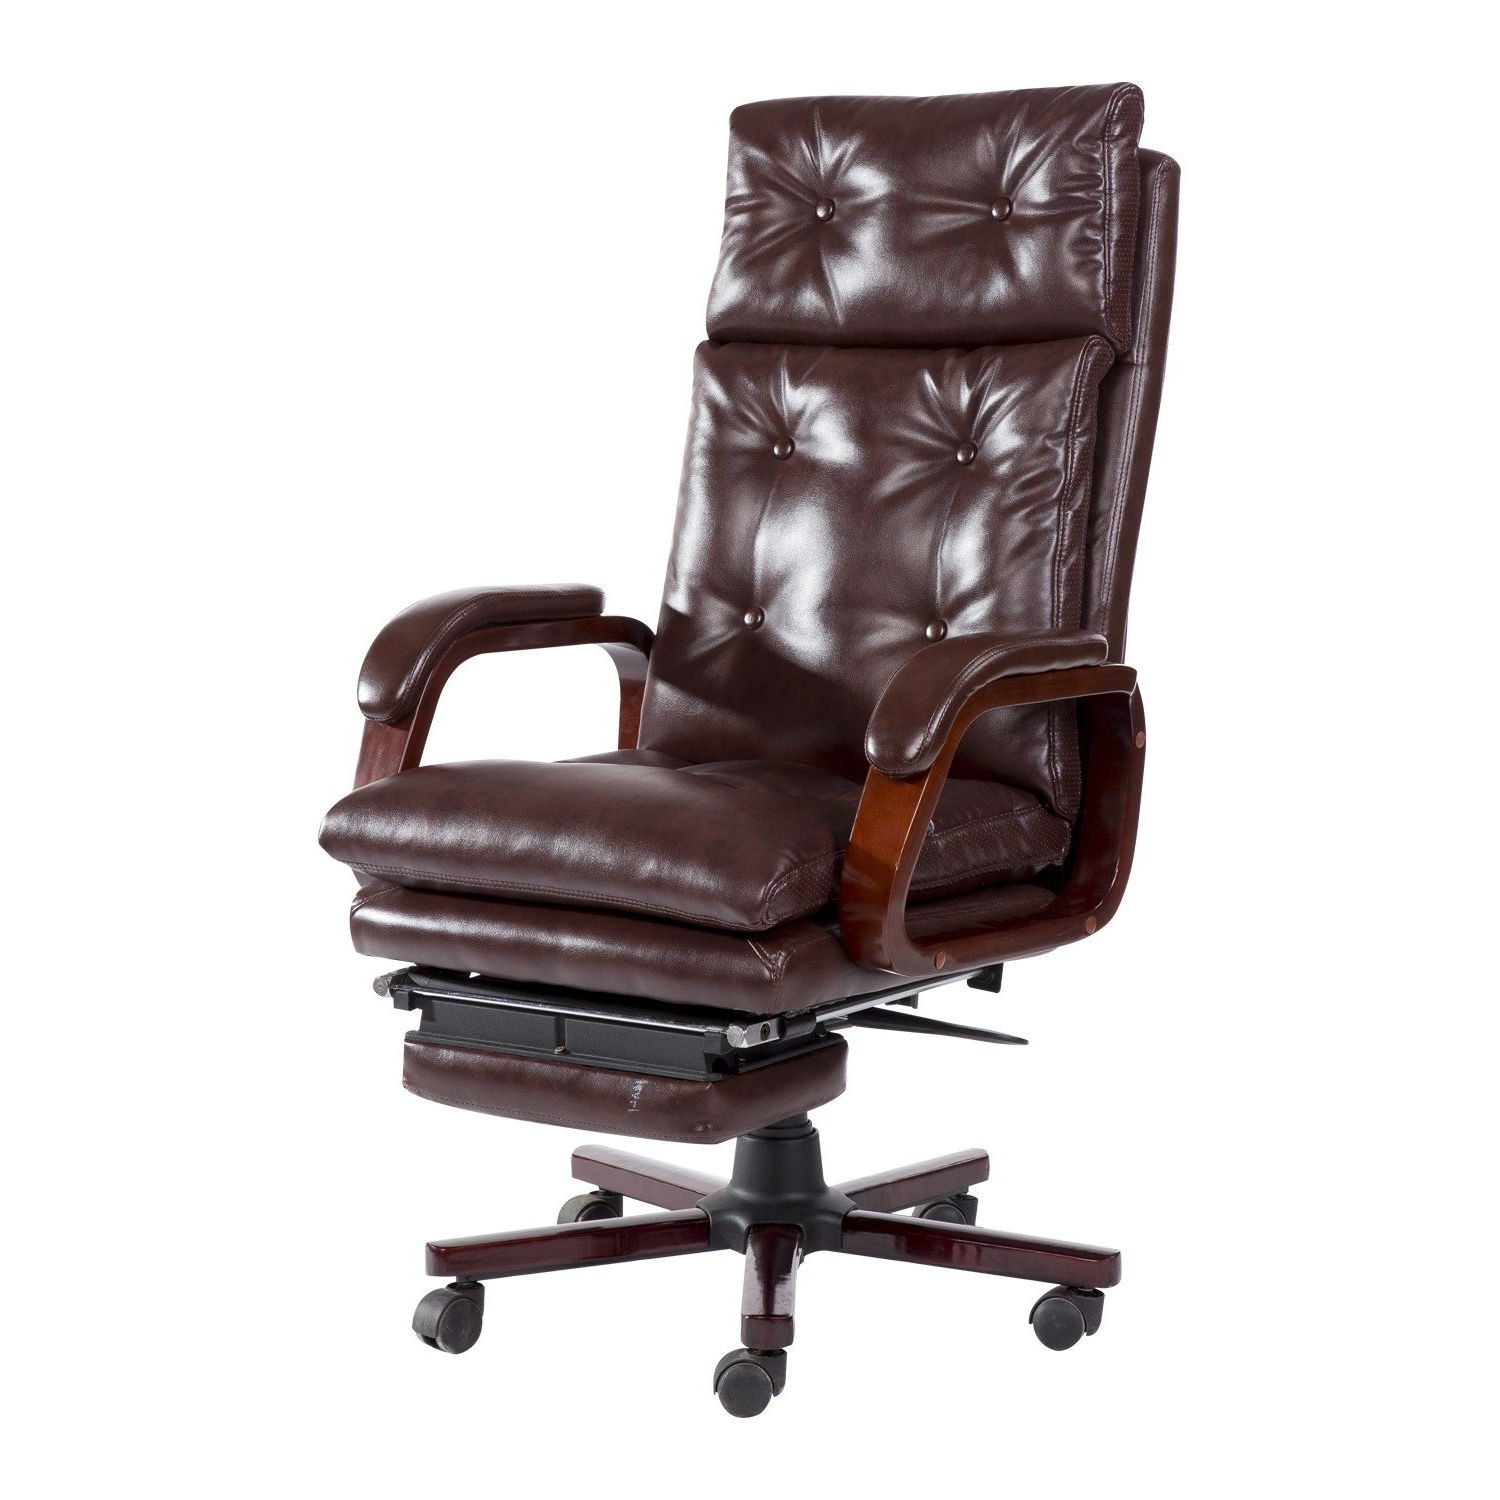 Executive Reclining Office Chairs In Latest Homcom High Back Pu Leather Executive Reclining Office Chair With (View 5 of 20)